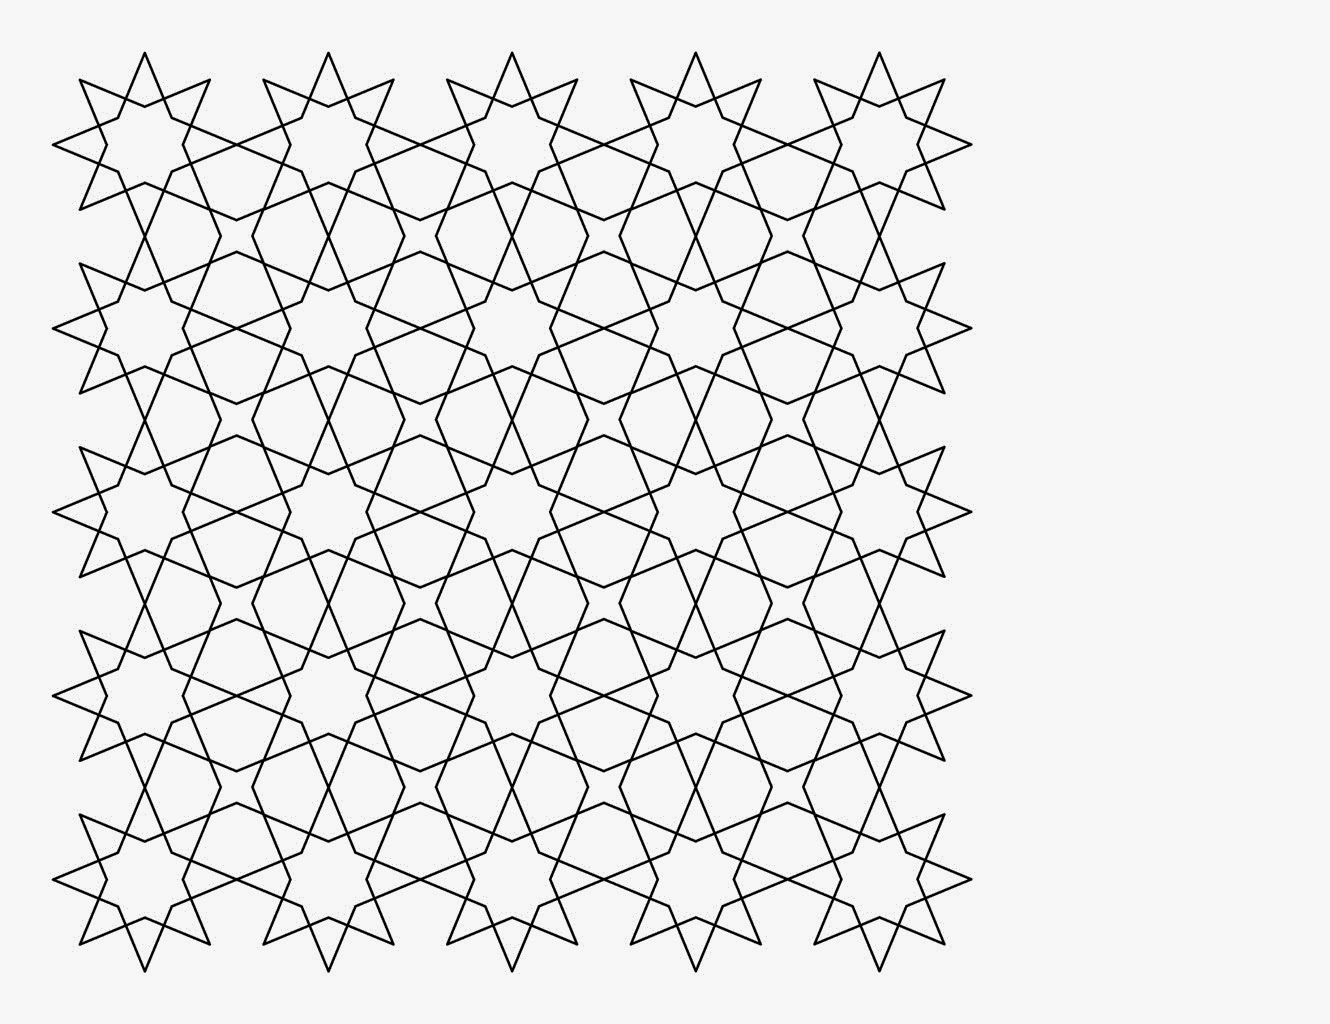 tessellating shapes templates - median don steward mathematics teaching tessellations to